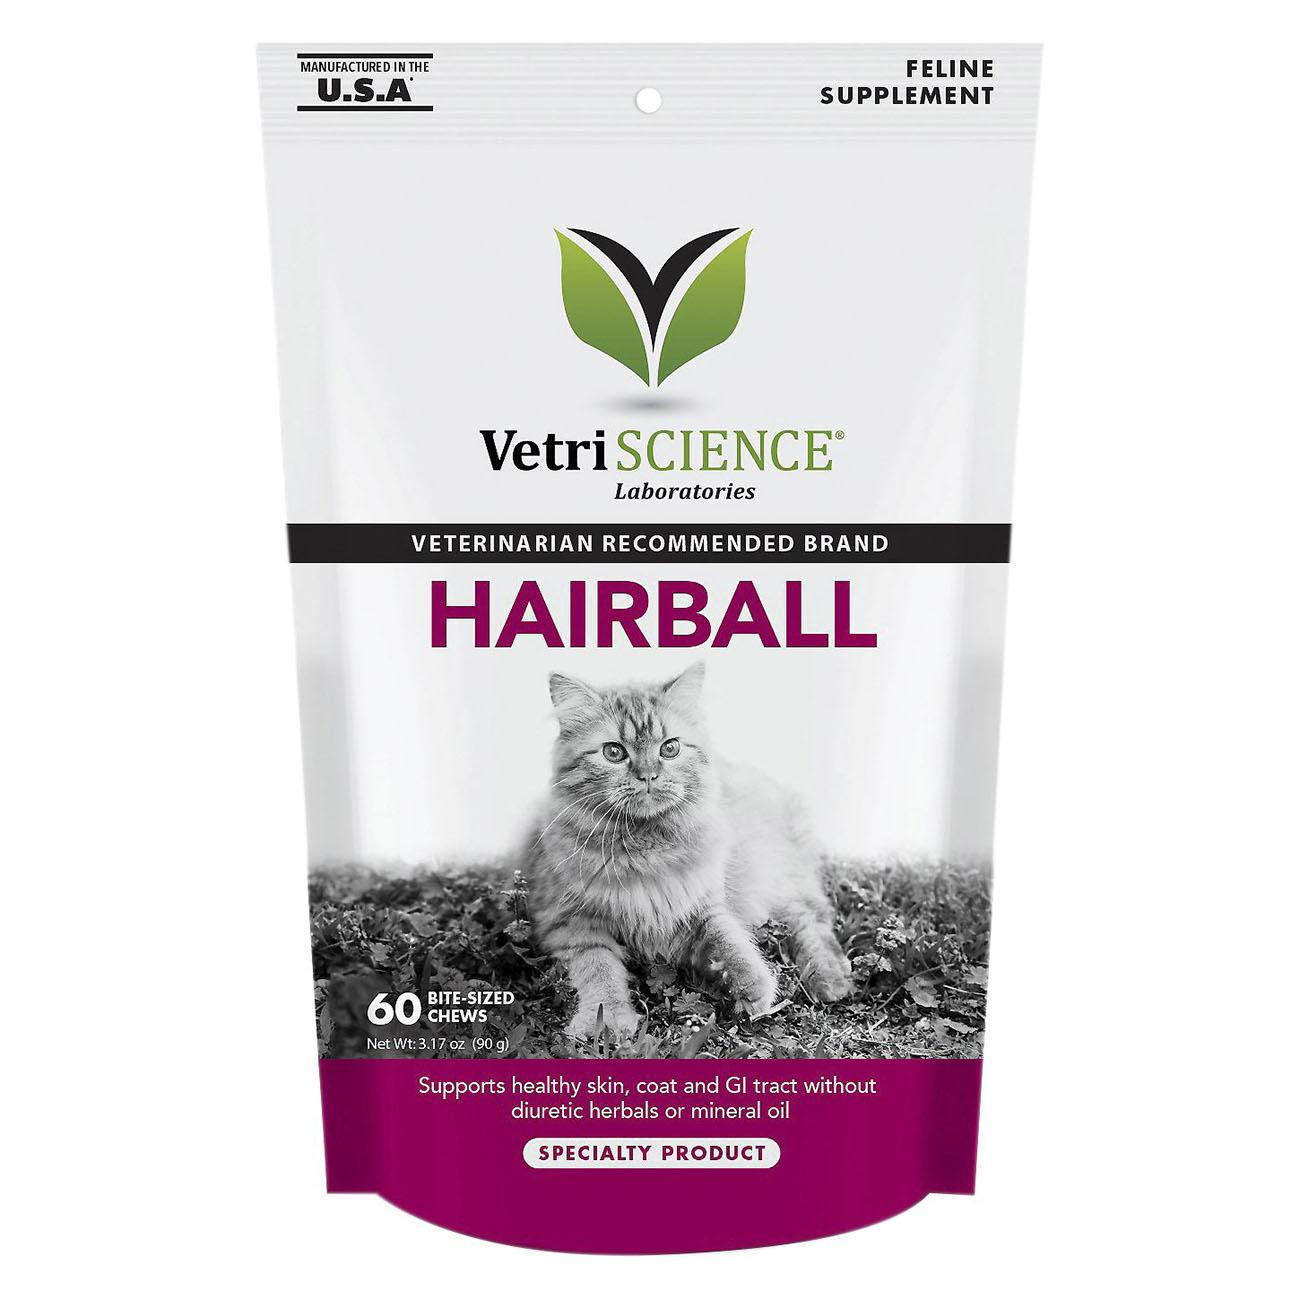 VetriScience Hairball Digestive and Coat Supplement Cat Chews